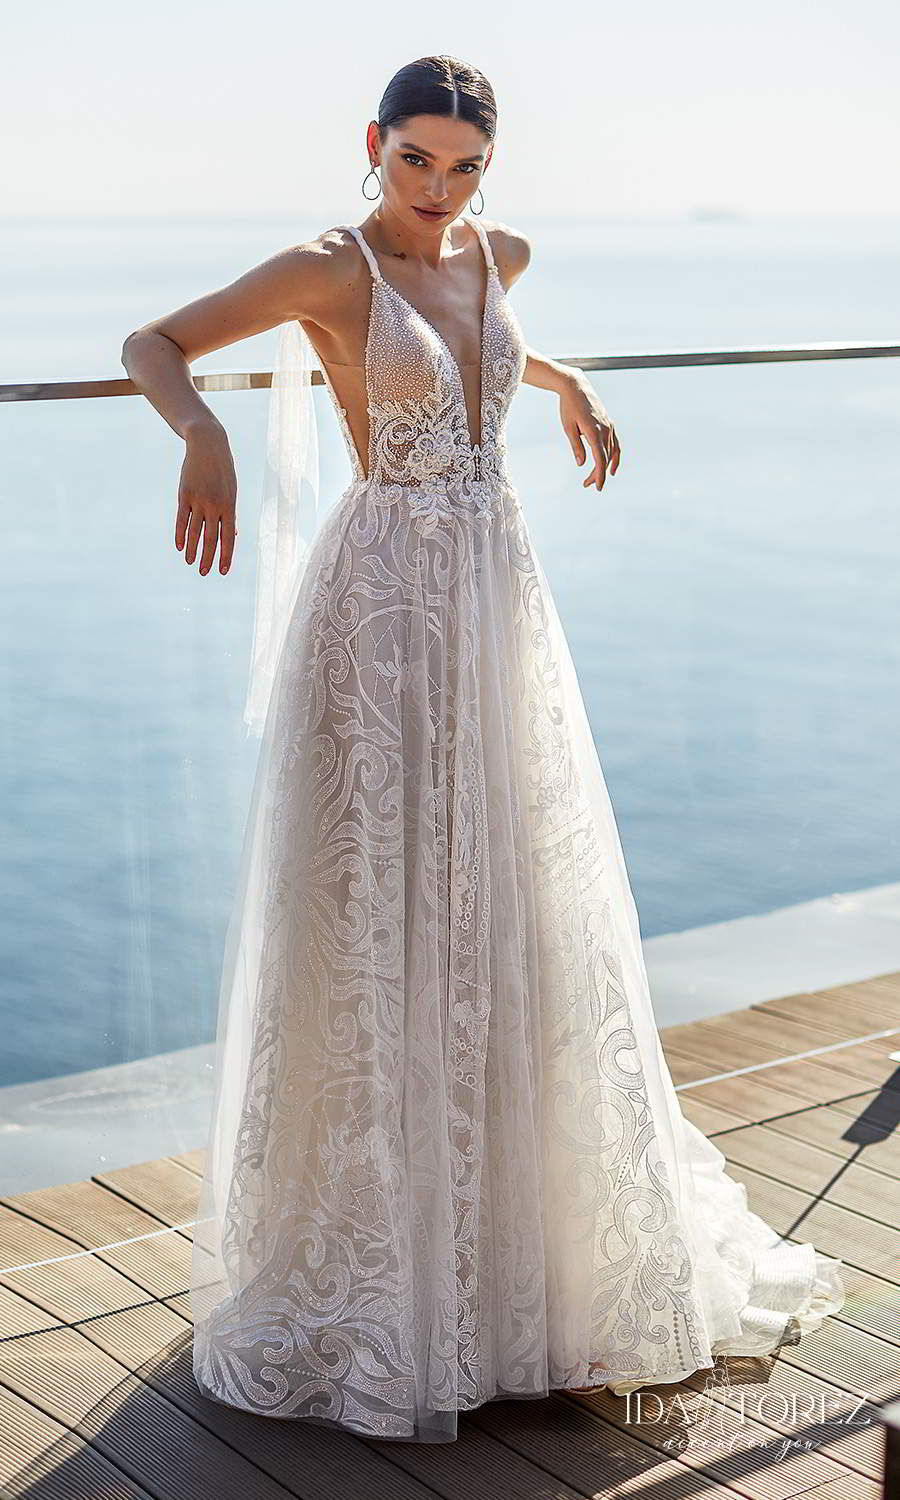 ida torez 2021 bridal sleeveless straps plunging v neckline fully embellished lace a line ball gown wedding dress chapel train (tempting mouth) mv